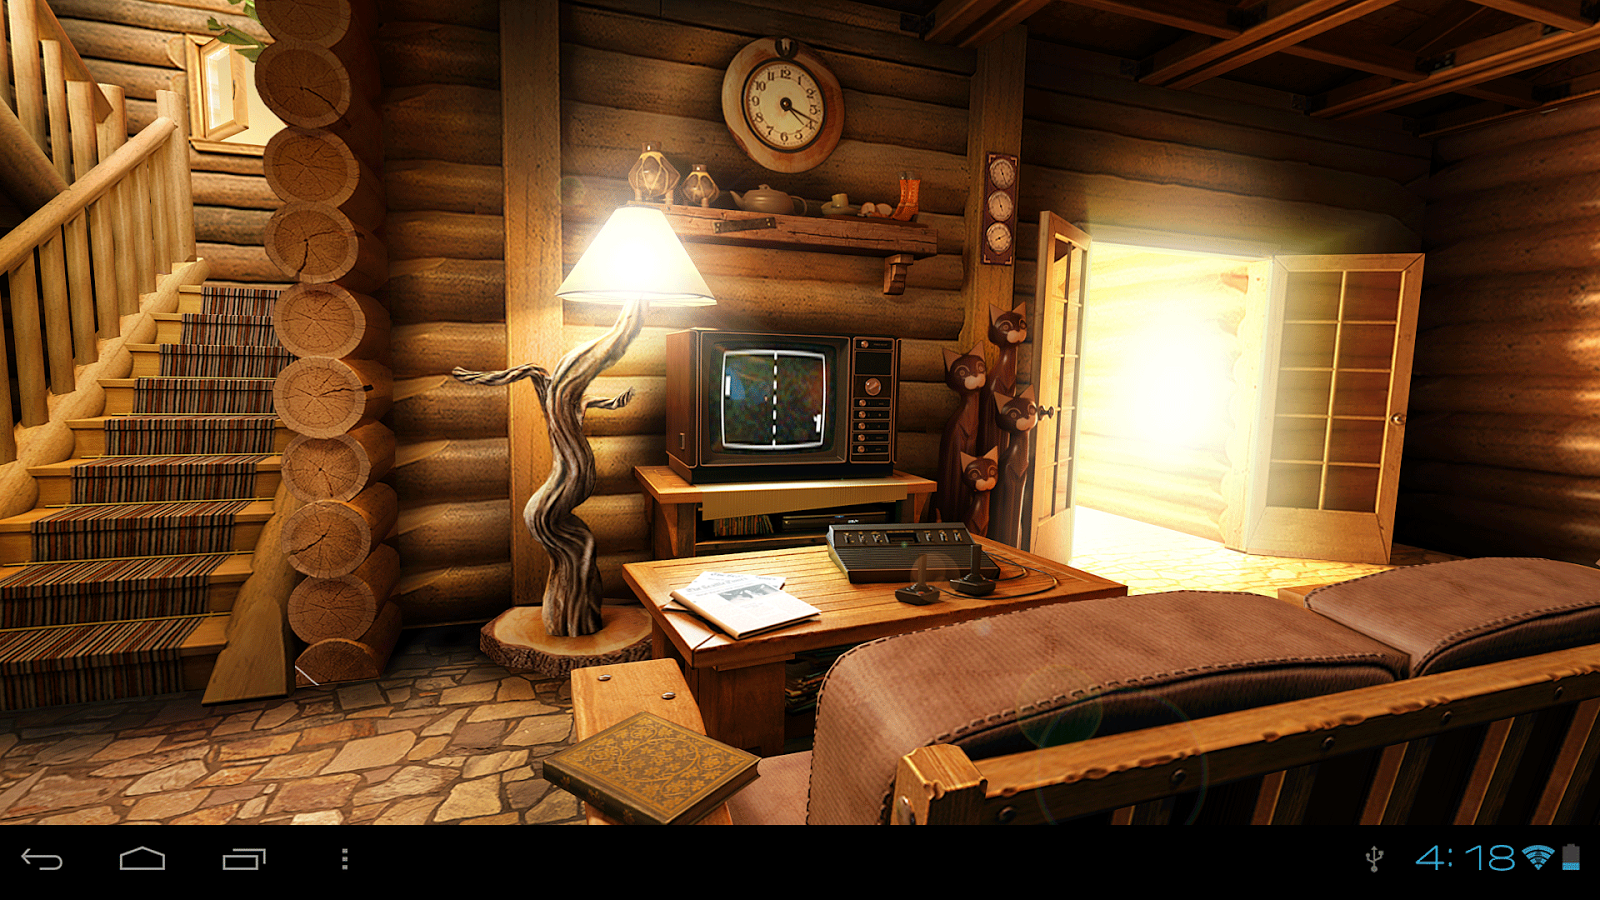 My log home 3d wallpaper free android apps on google play for 3d wallpapers for home interiors